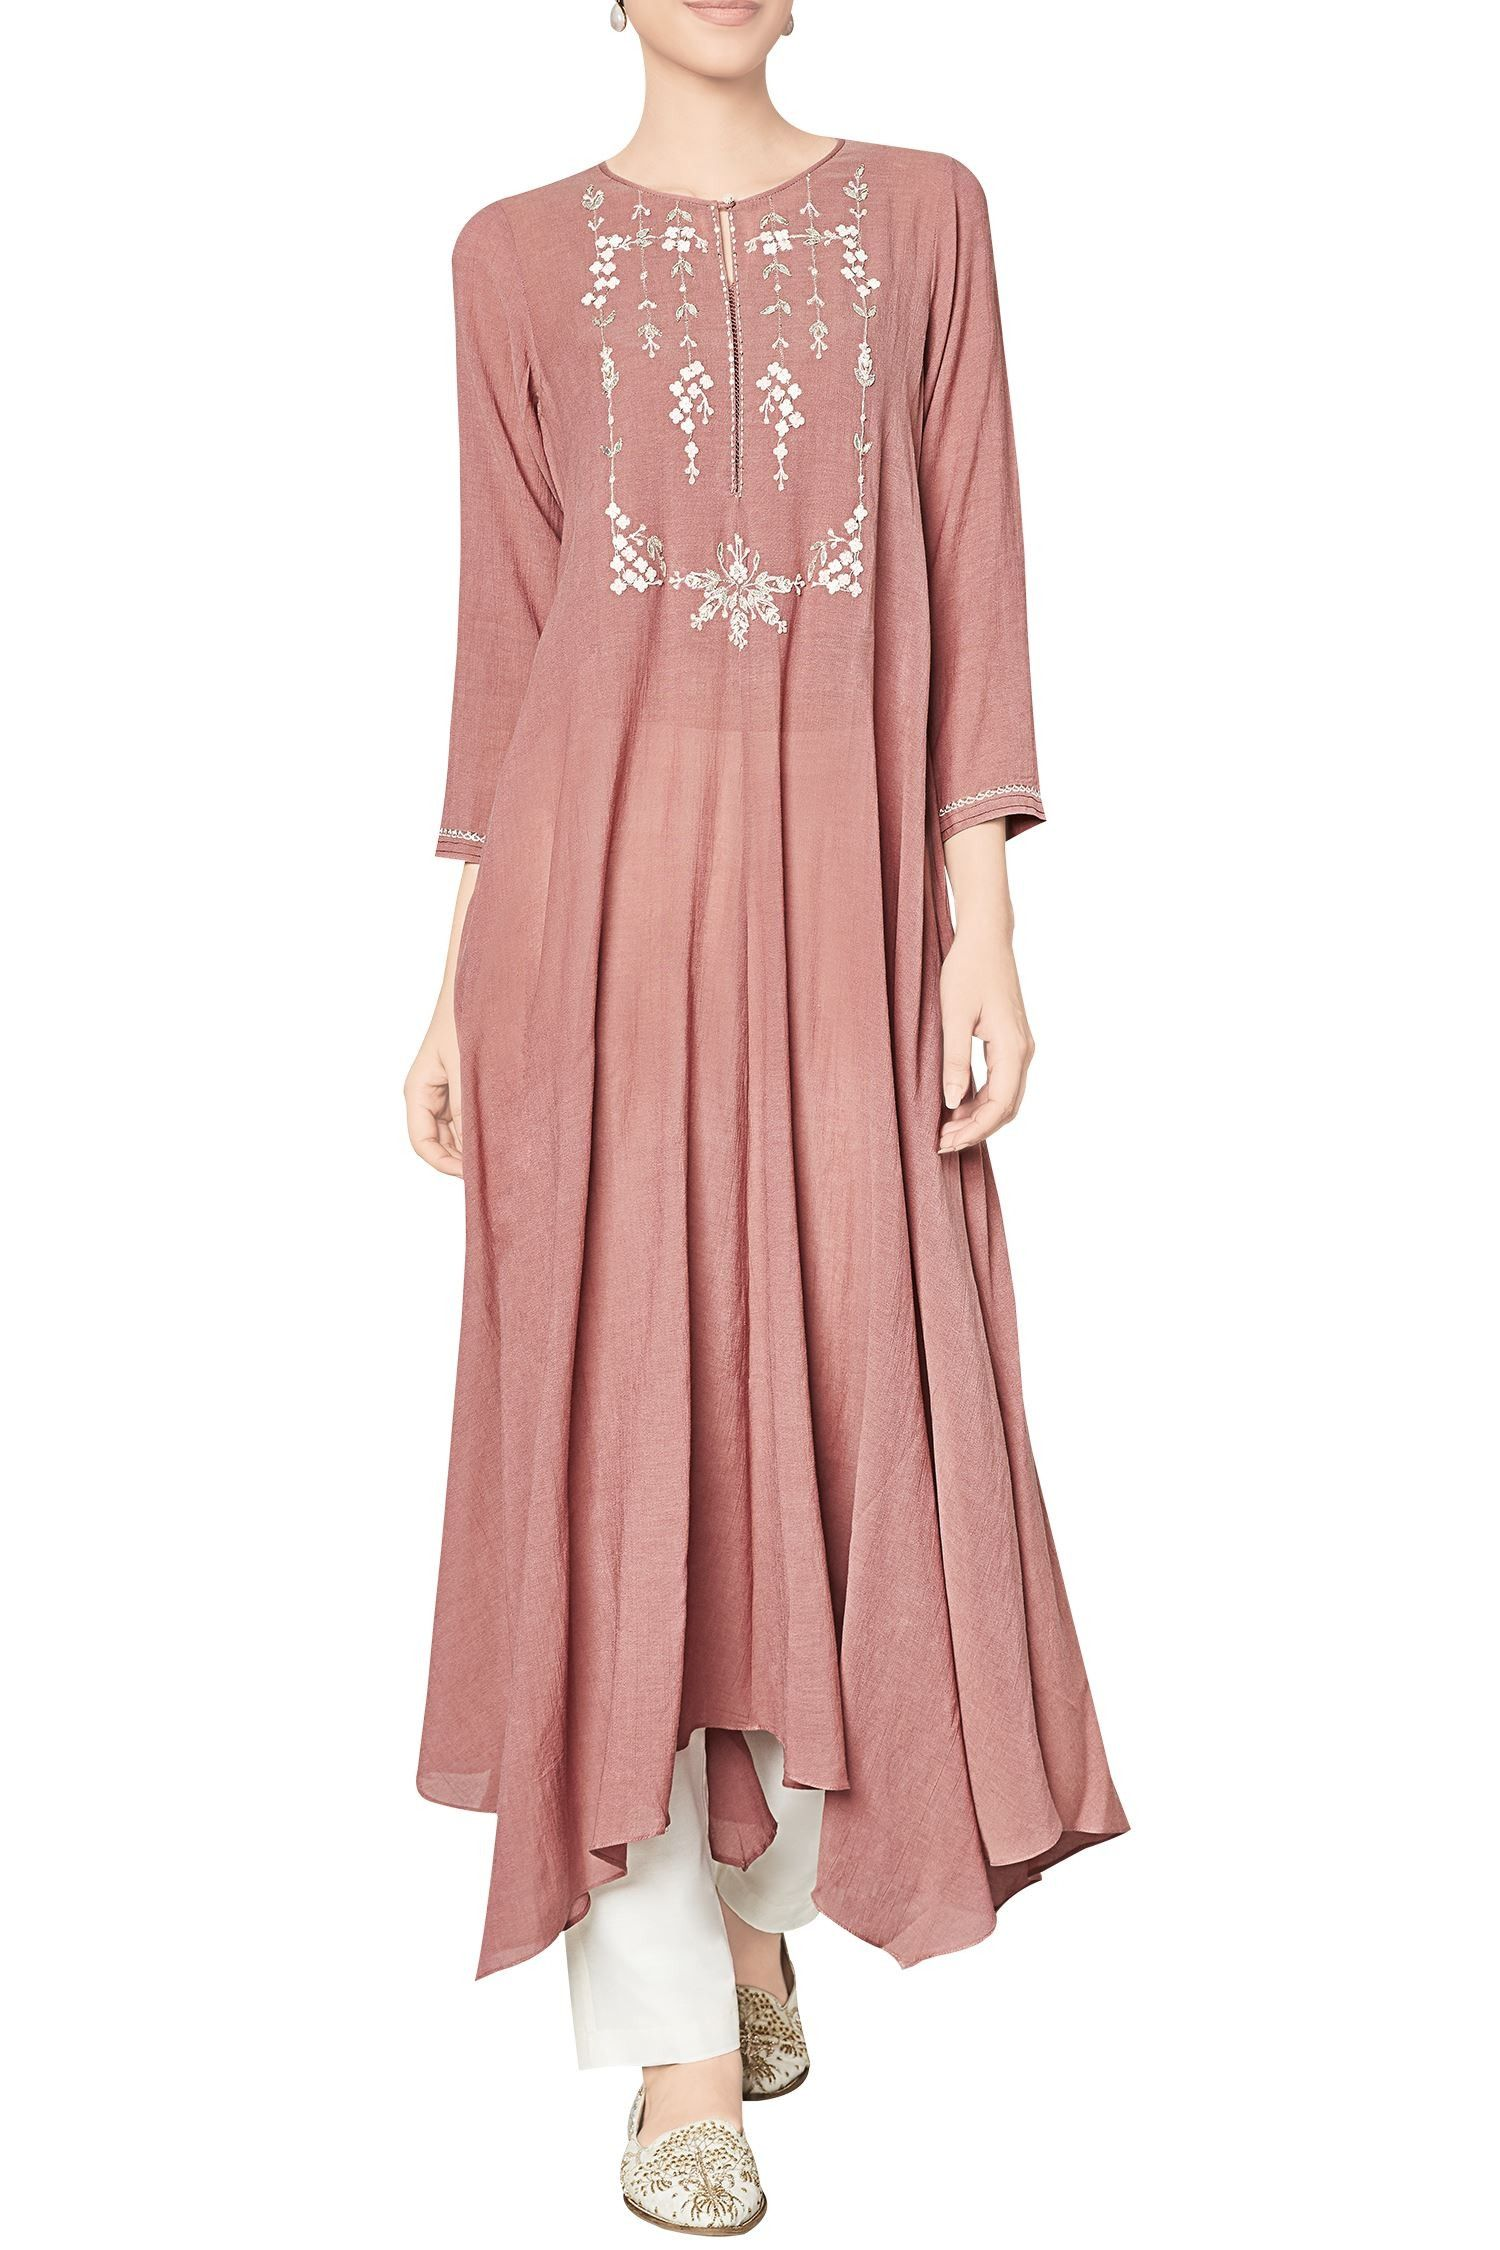 ce023a137c5 Shop Anita Dongre - Marsala cotton georgette tunic Latest Collection  Available at Aza Fashions